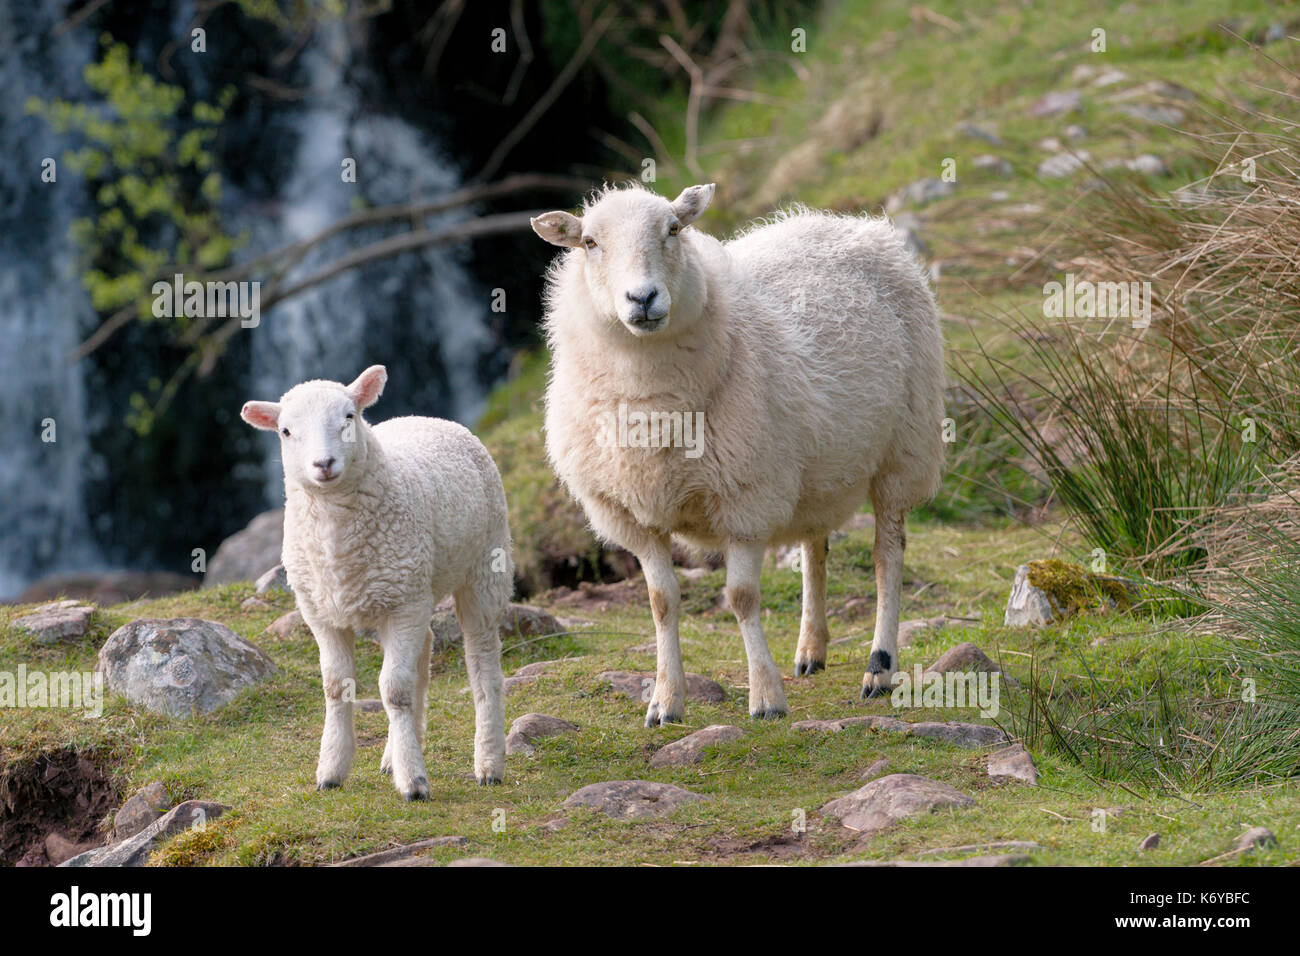 Two Mountain sheep, an ewe and a lamb, standing on a grassed area in front of a waterfall in Brecon Beacons National Park, Wales.This is common ground - Stock Image